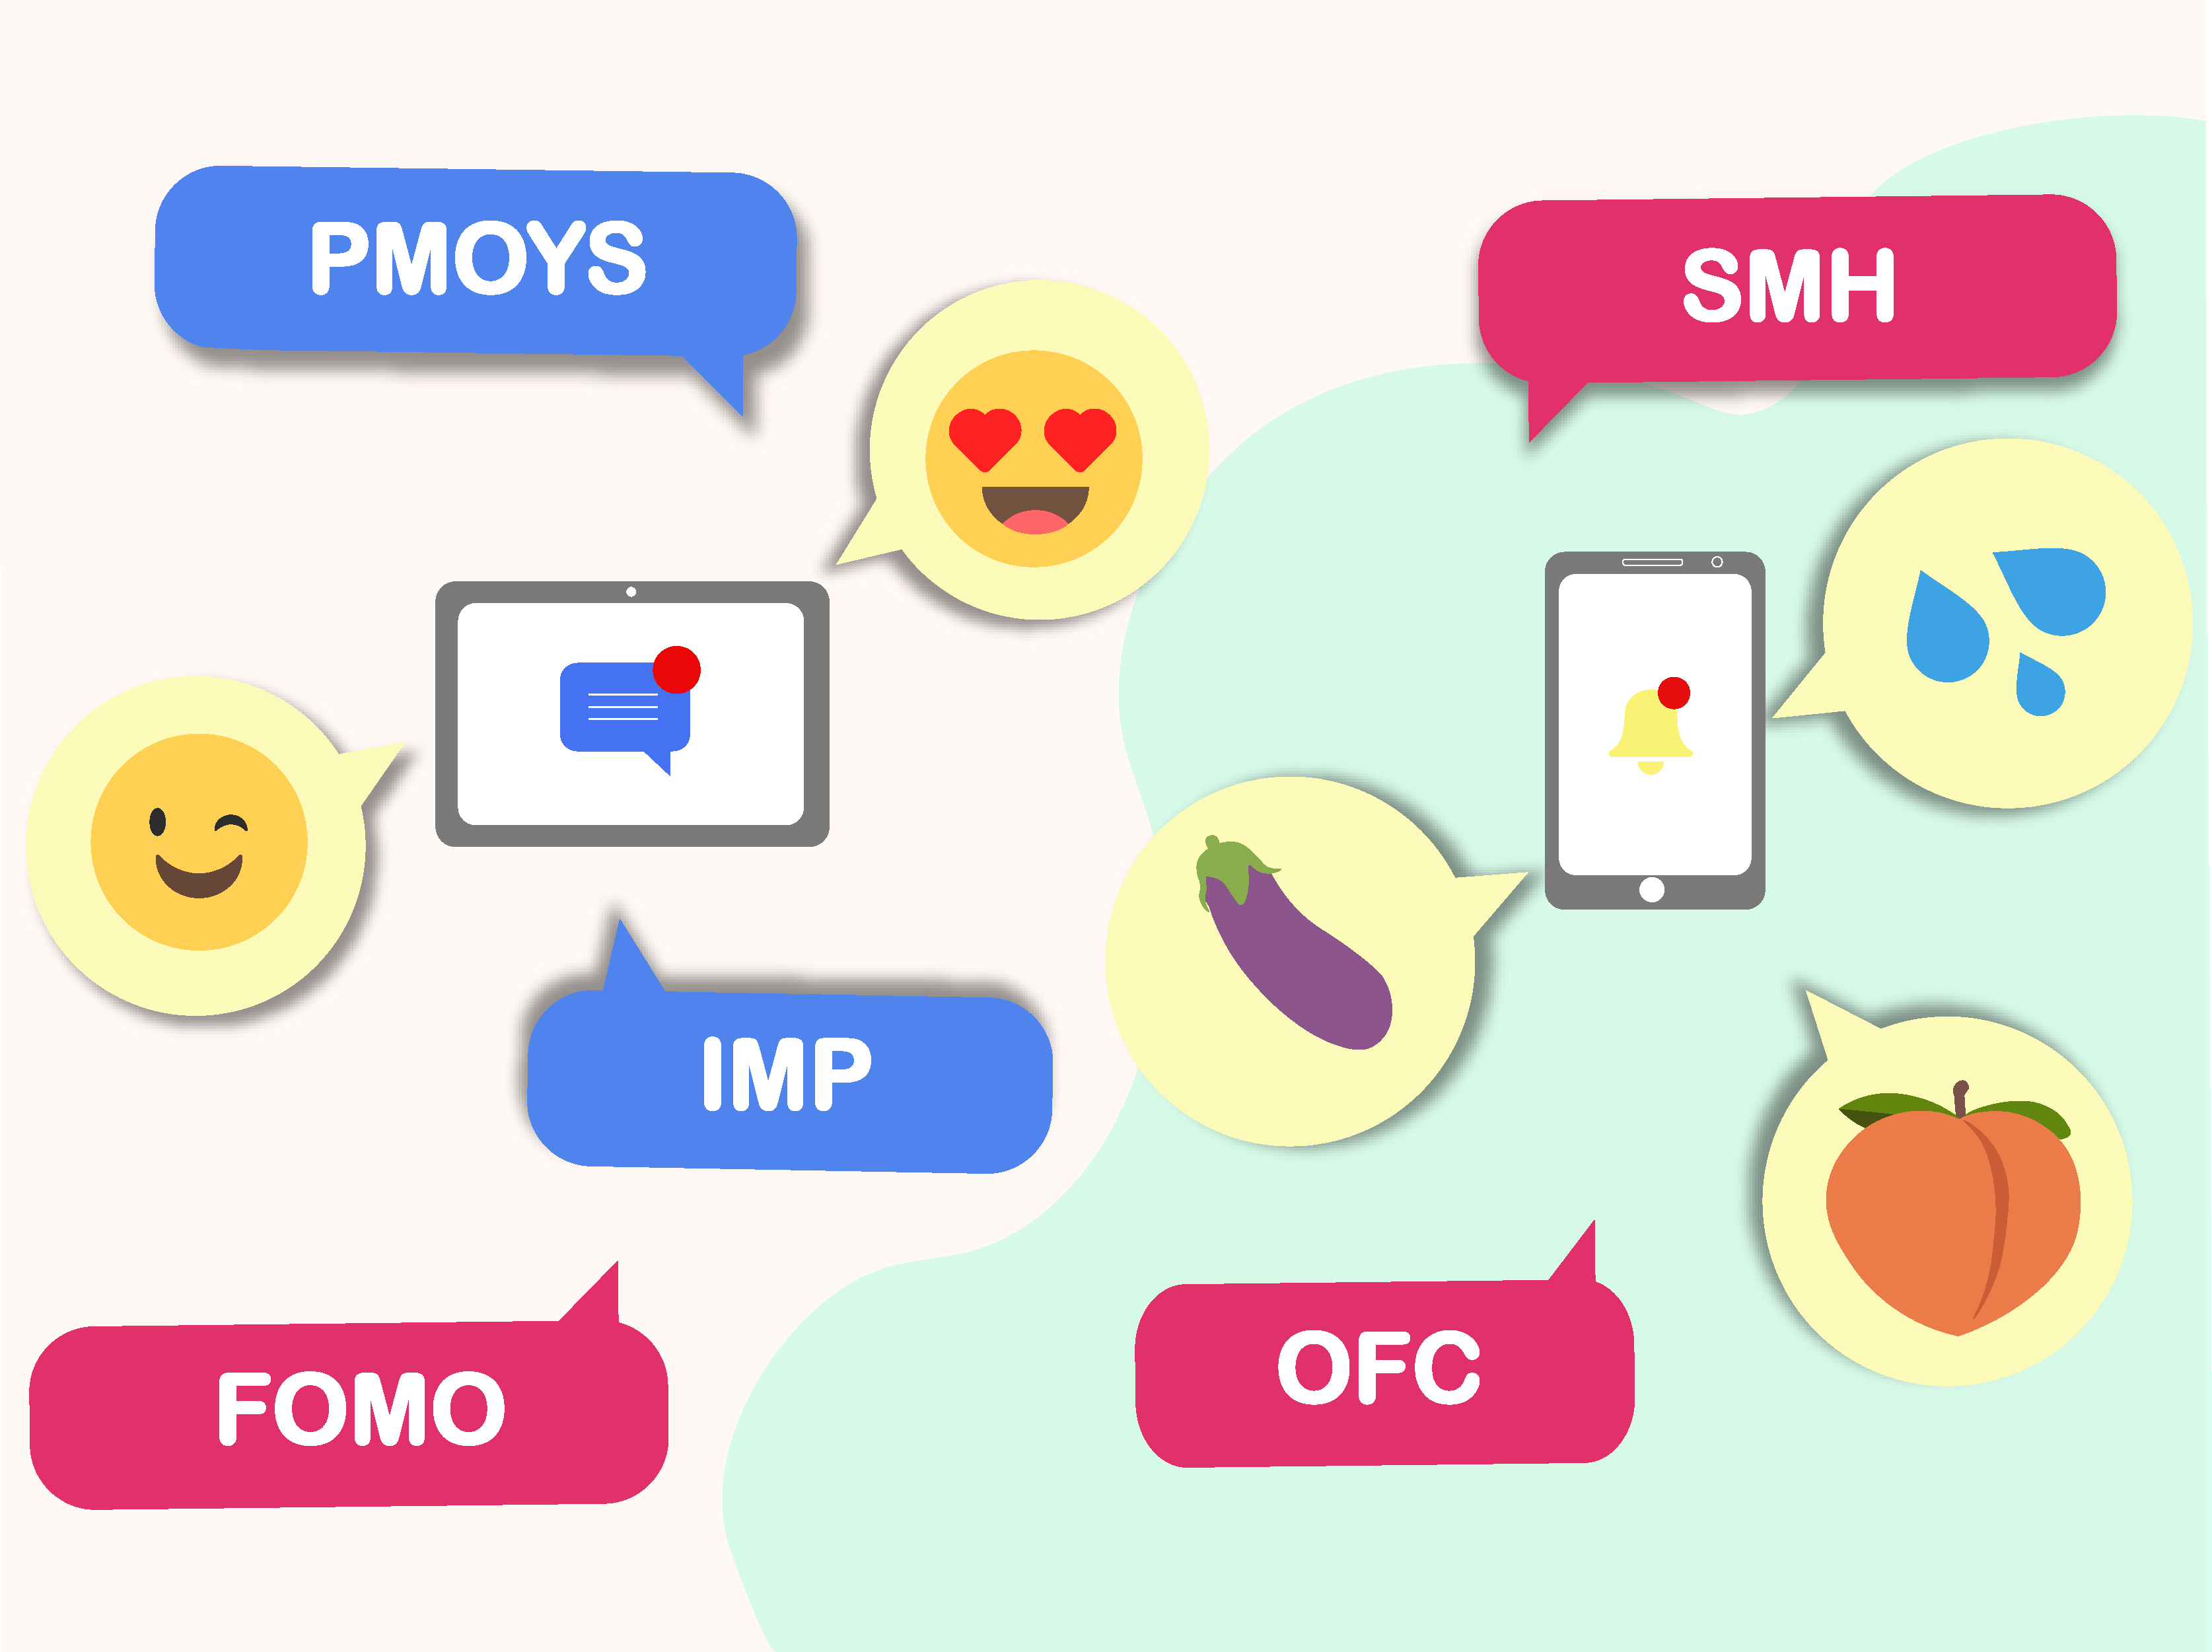 What does PMOYS mean? Teen Texting Codes Every Parent Should Know